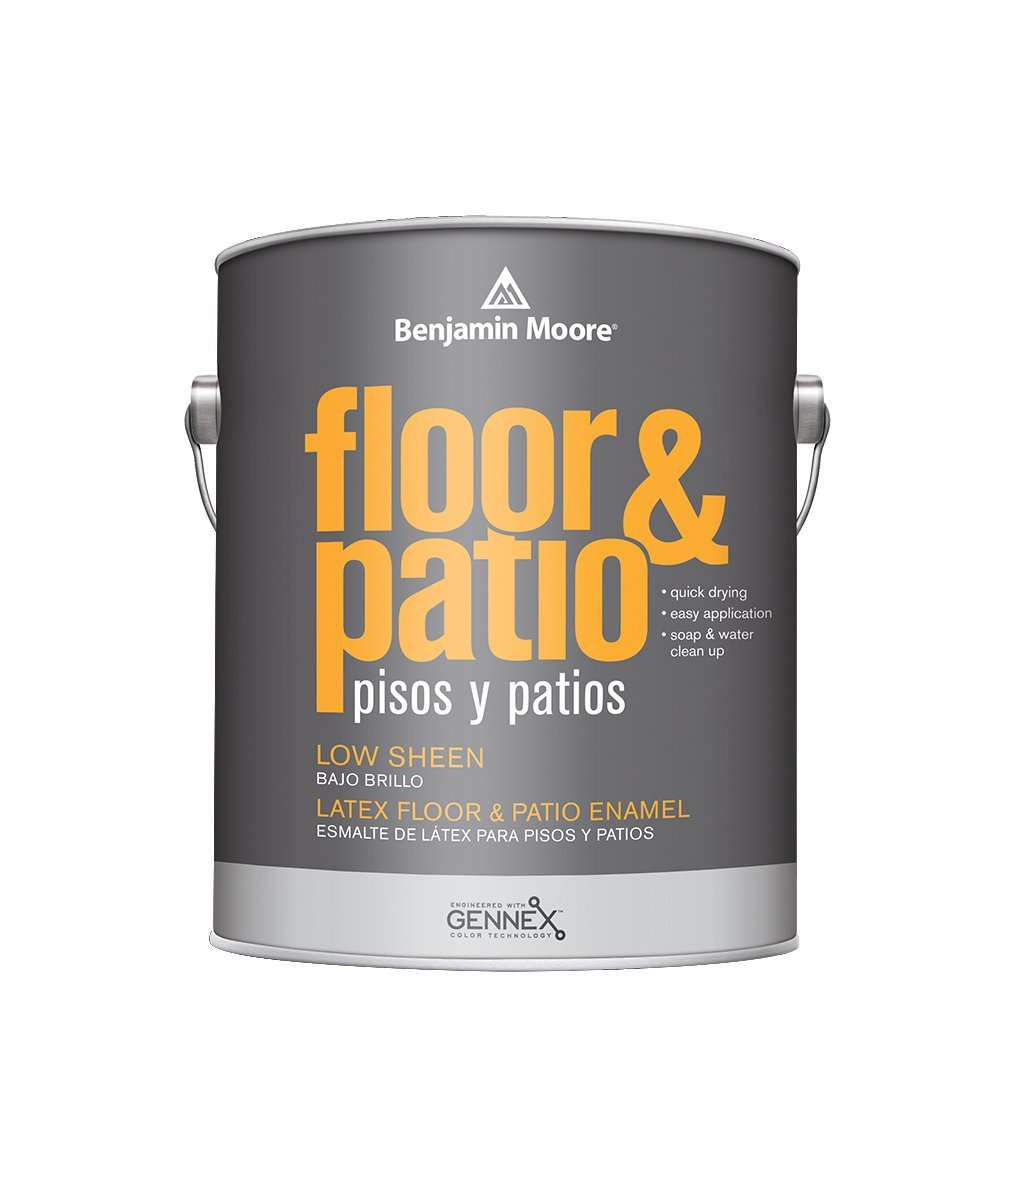 Benjamin Moore floor and patio low sheen Interior Paint , available at Johnson Paint & Maine Paint in MA, NH & ME.